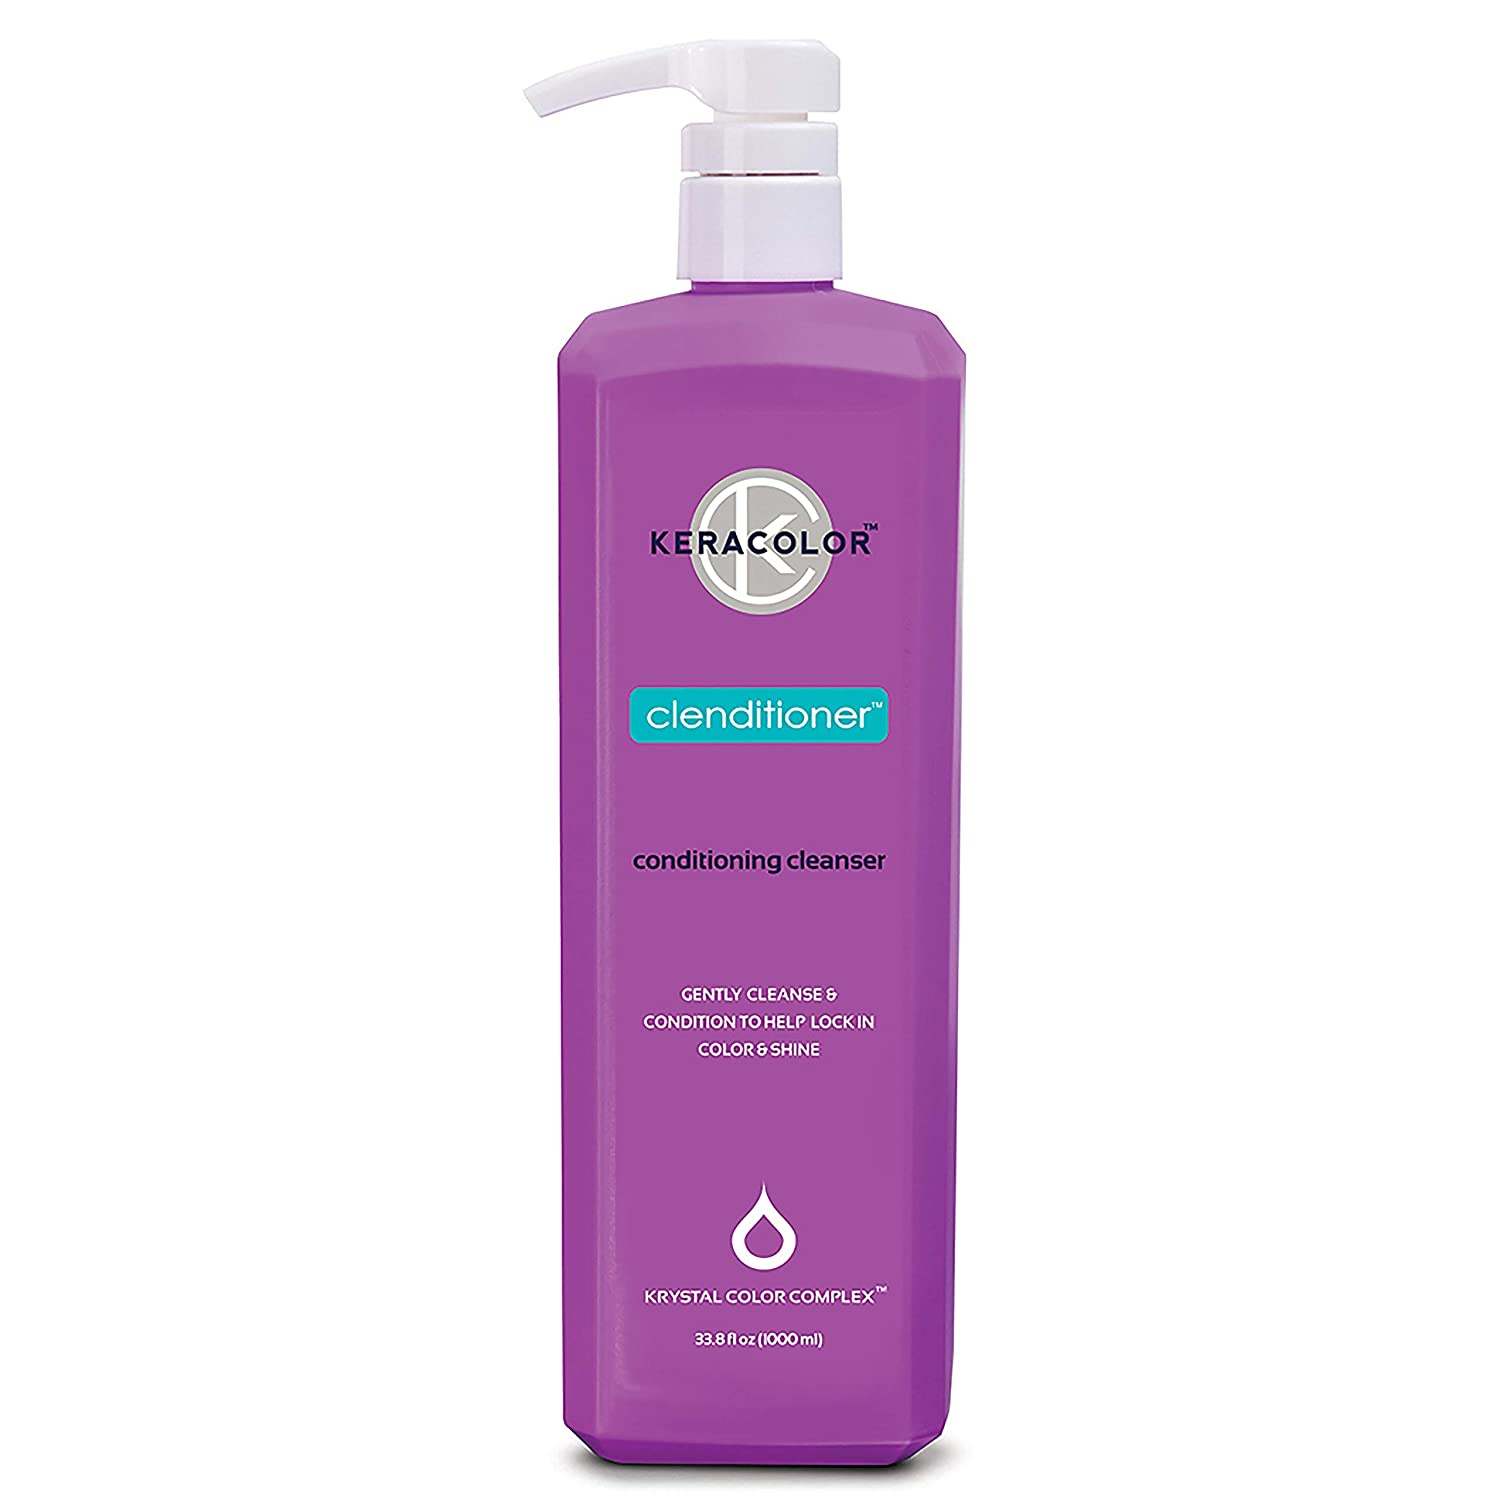 Keracolor Clenditioner Co Wash Cleansing Conditioner Keratin Infused - Color Safe Prevents Color Fade - Replaces Your Shampoo, 1 liter